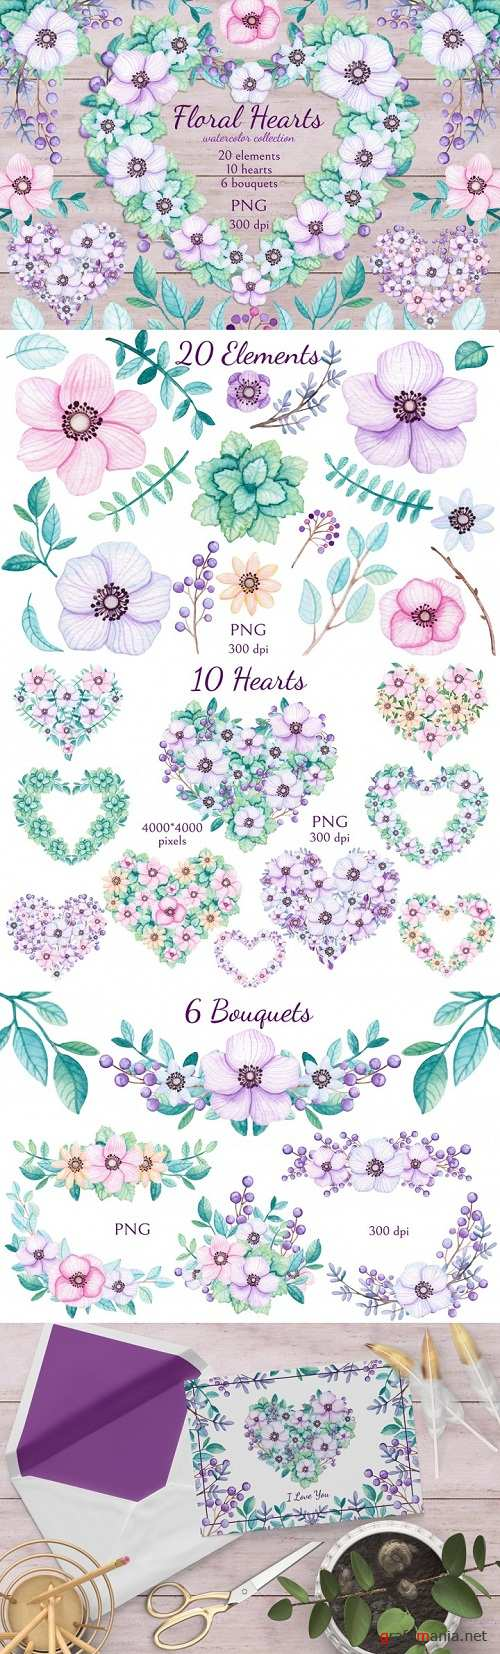 Thehungryjpeg - Floral Hearts 117479